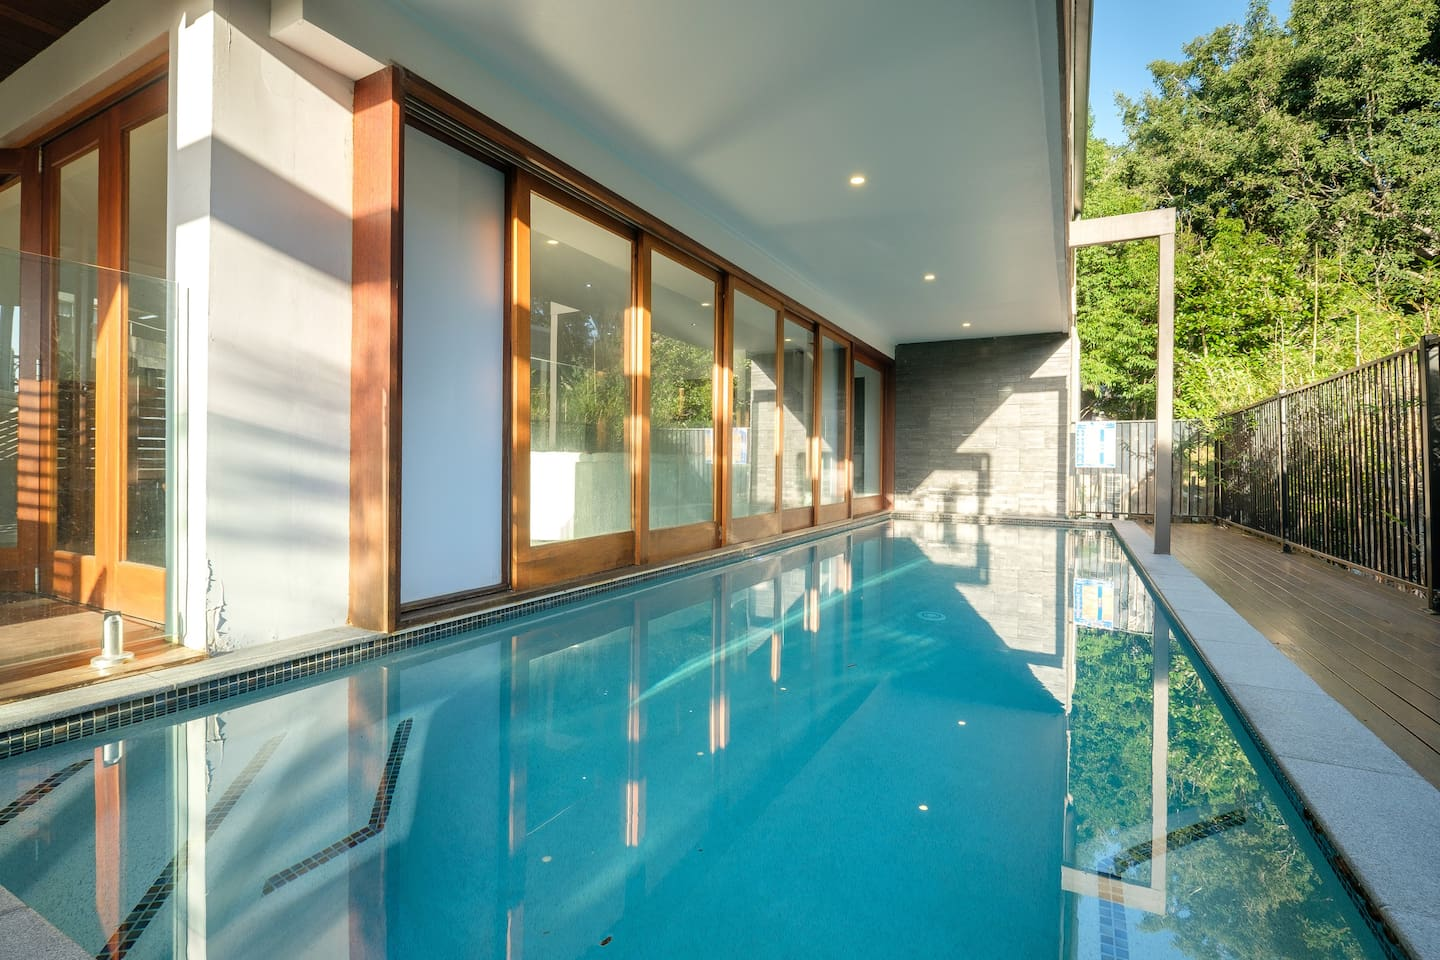 Long lap pool with sliding doors opening onto living area